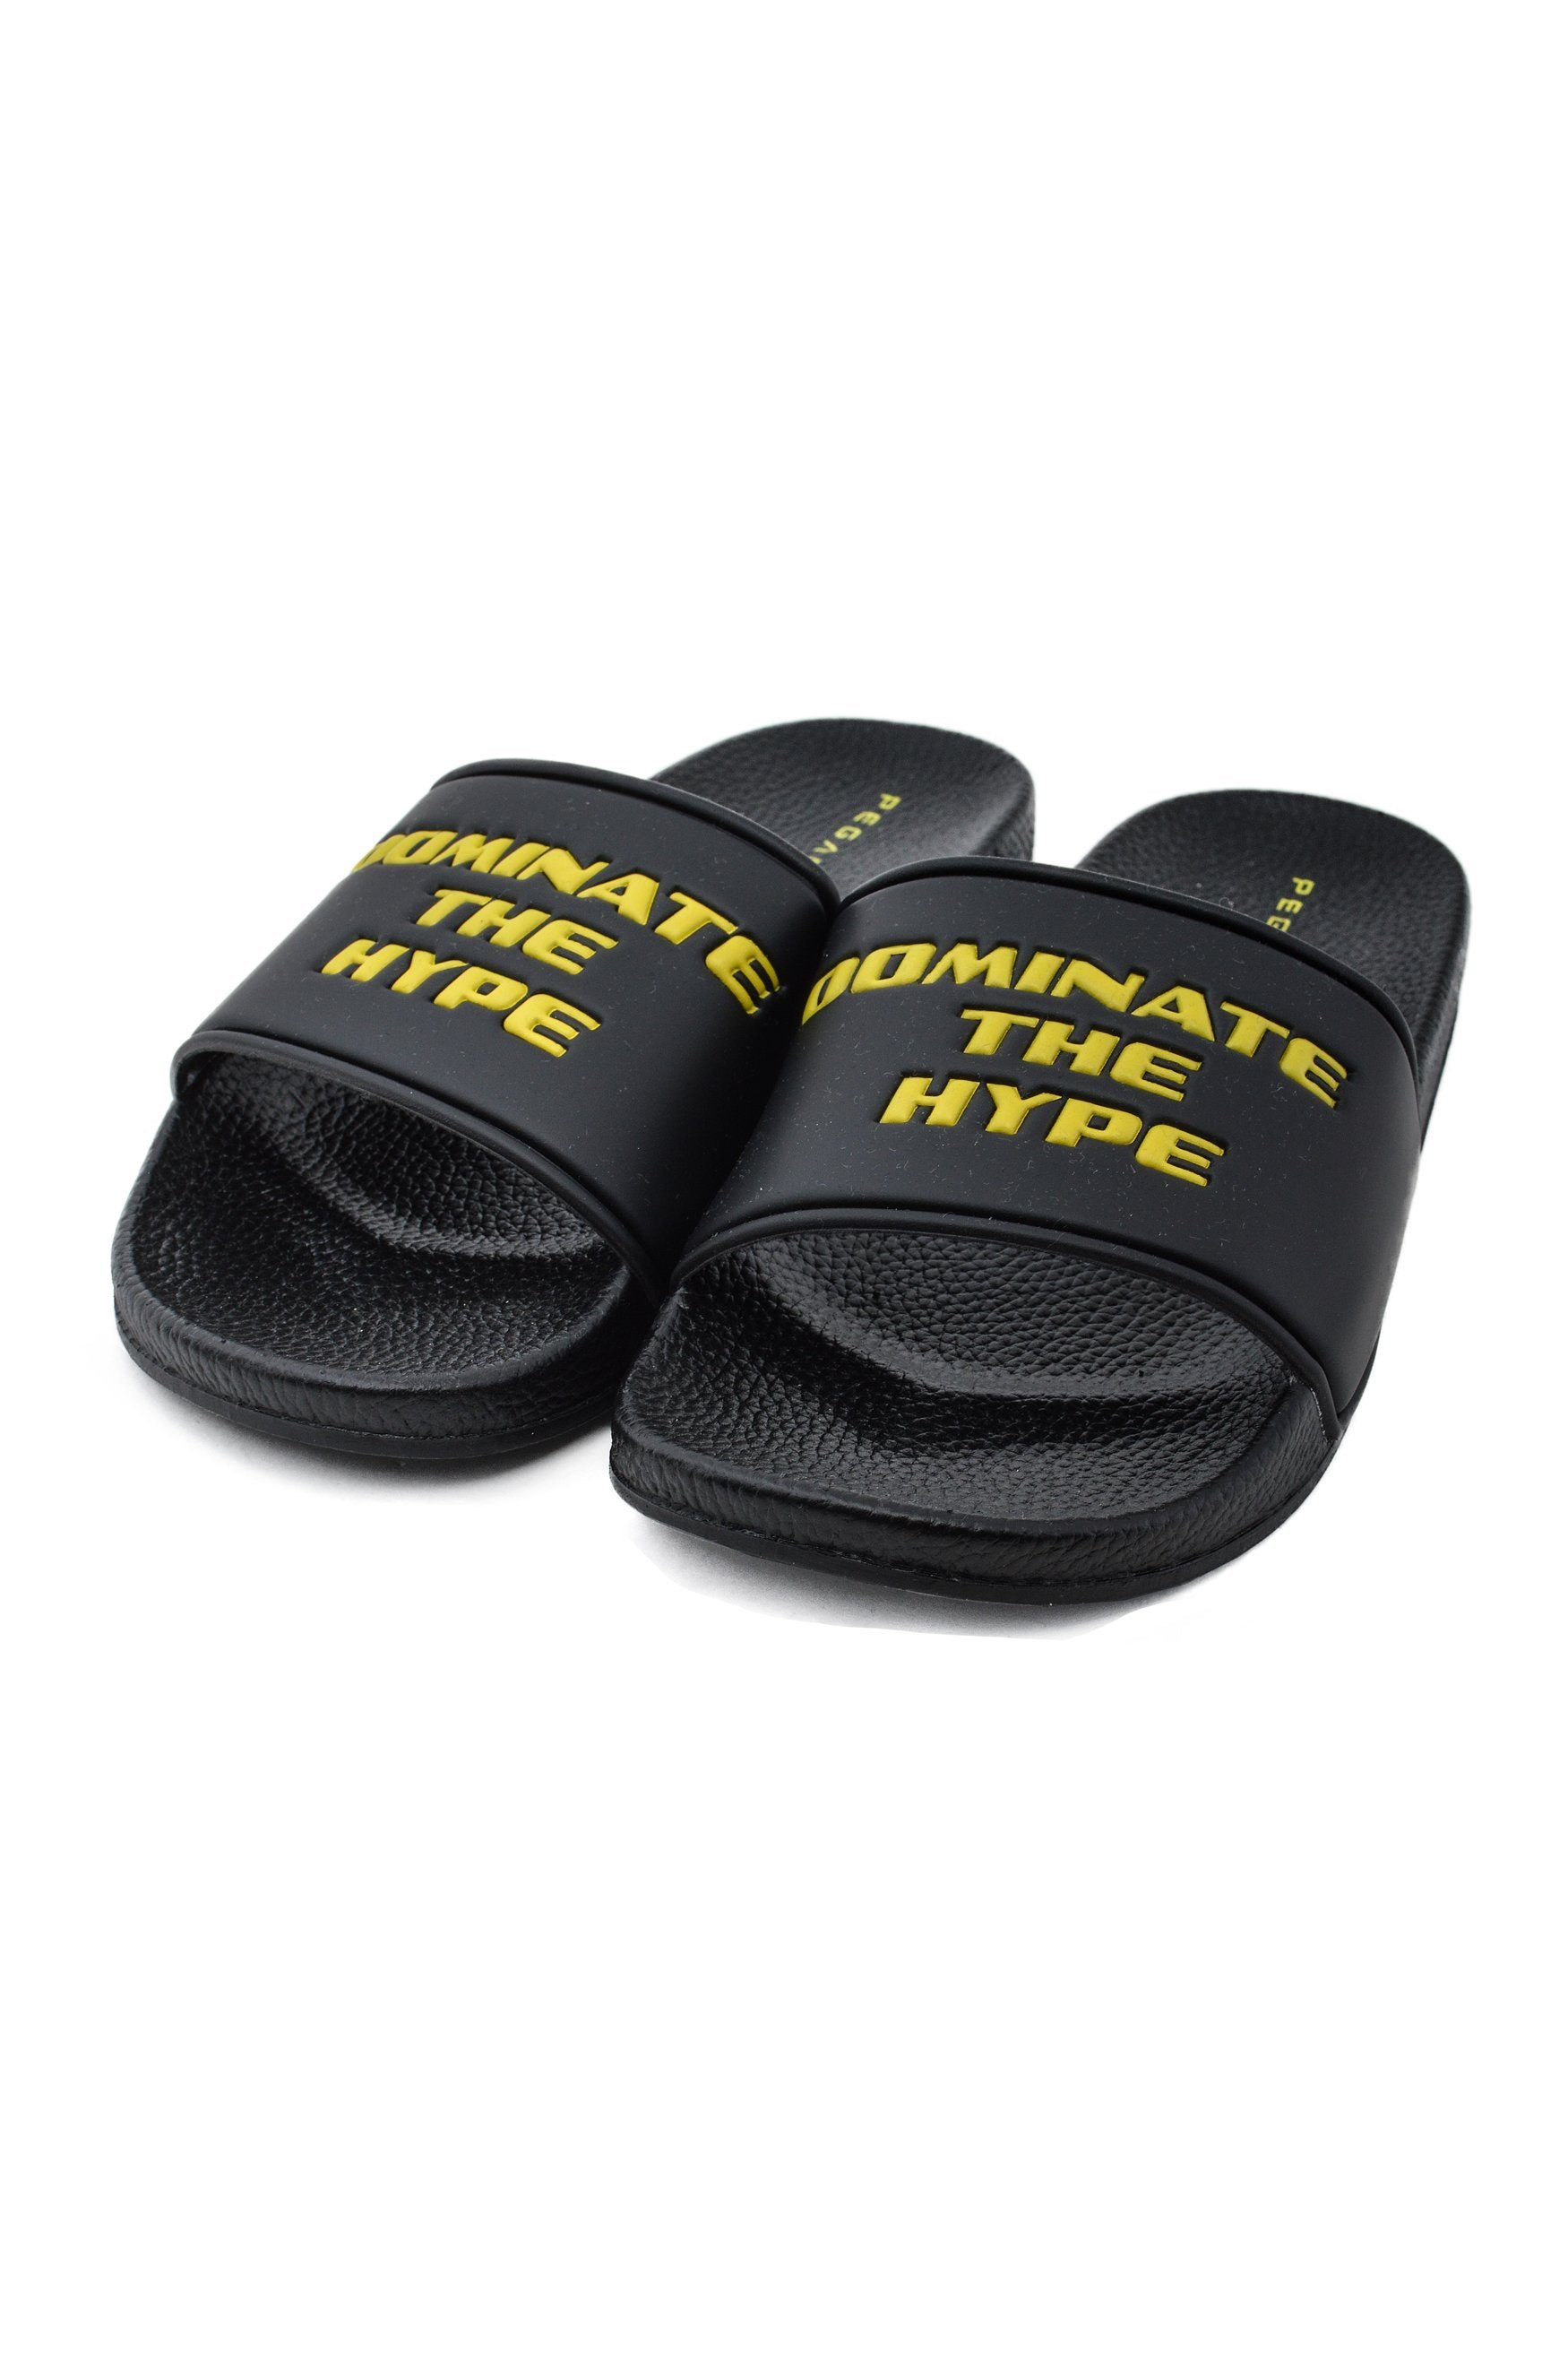 Dominate The Hype Sliders Black - PEGADOR - Dominate the Hype